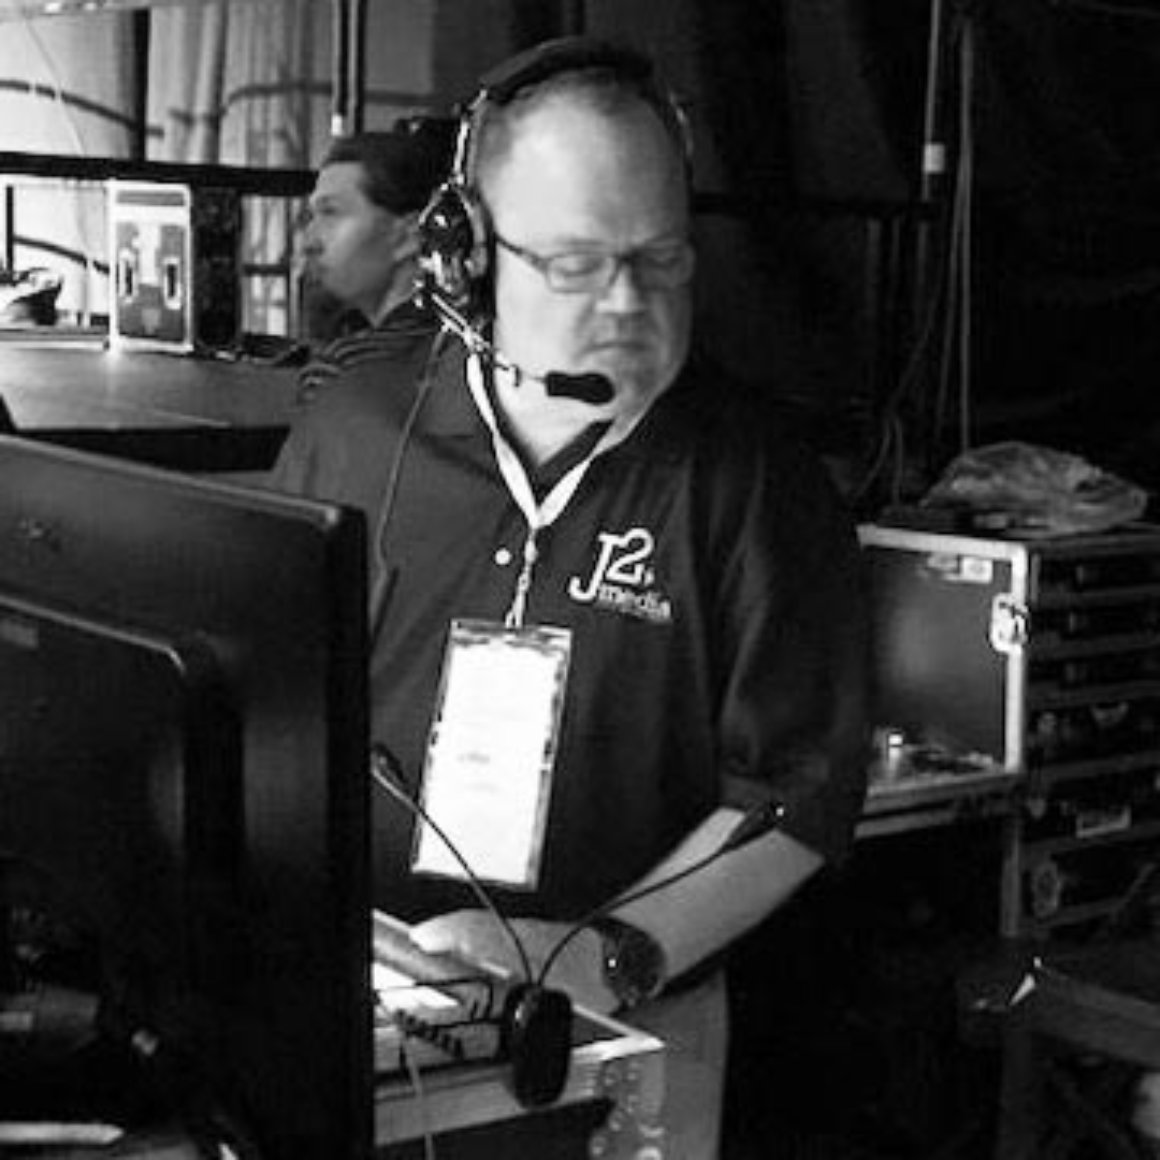 j2media-profilepicture-home-b&w-paul